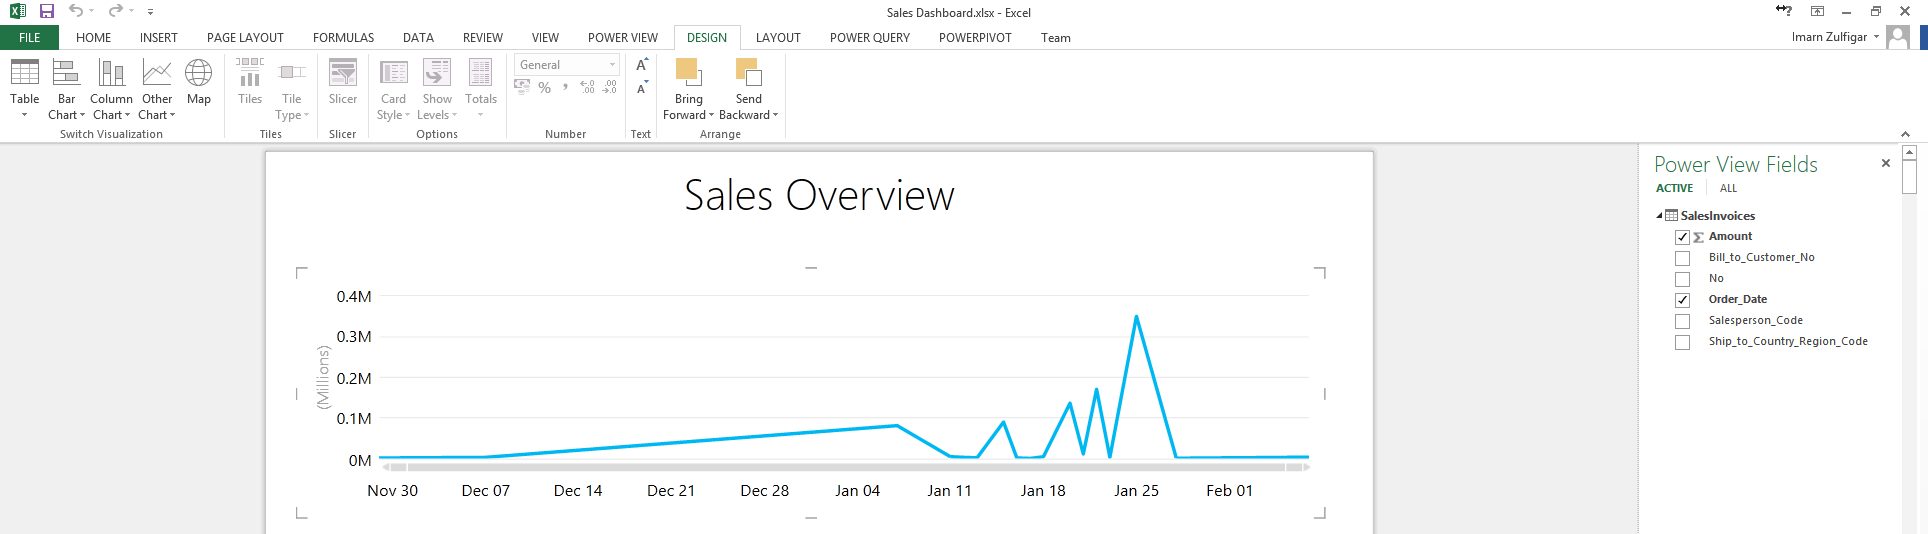 Power BI and Office 365 in Microsoft Dynamics NAV 2015 im9